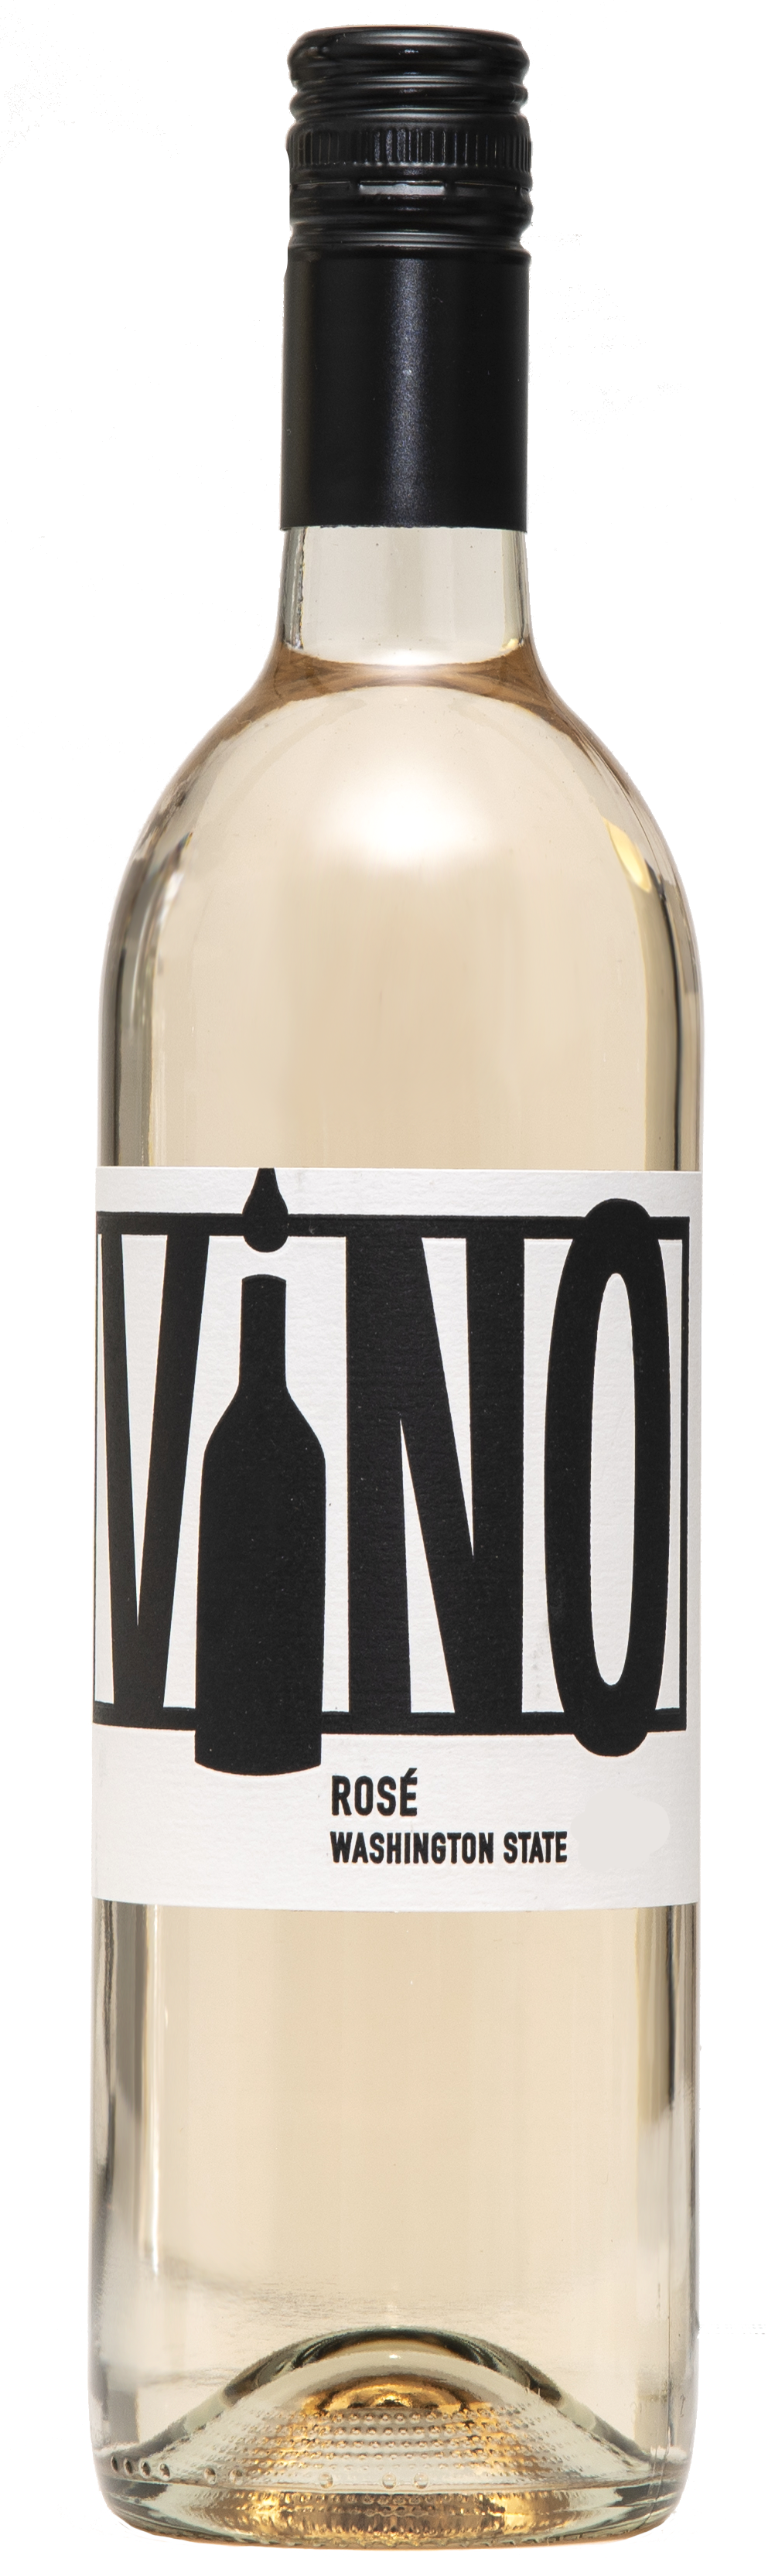 A clear wine bottle with black screw top and filled with delicately faint pink rosé wine. The label is white with black text, reading ViNO Rosé, Washington State.